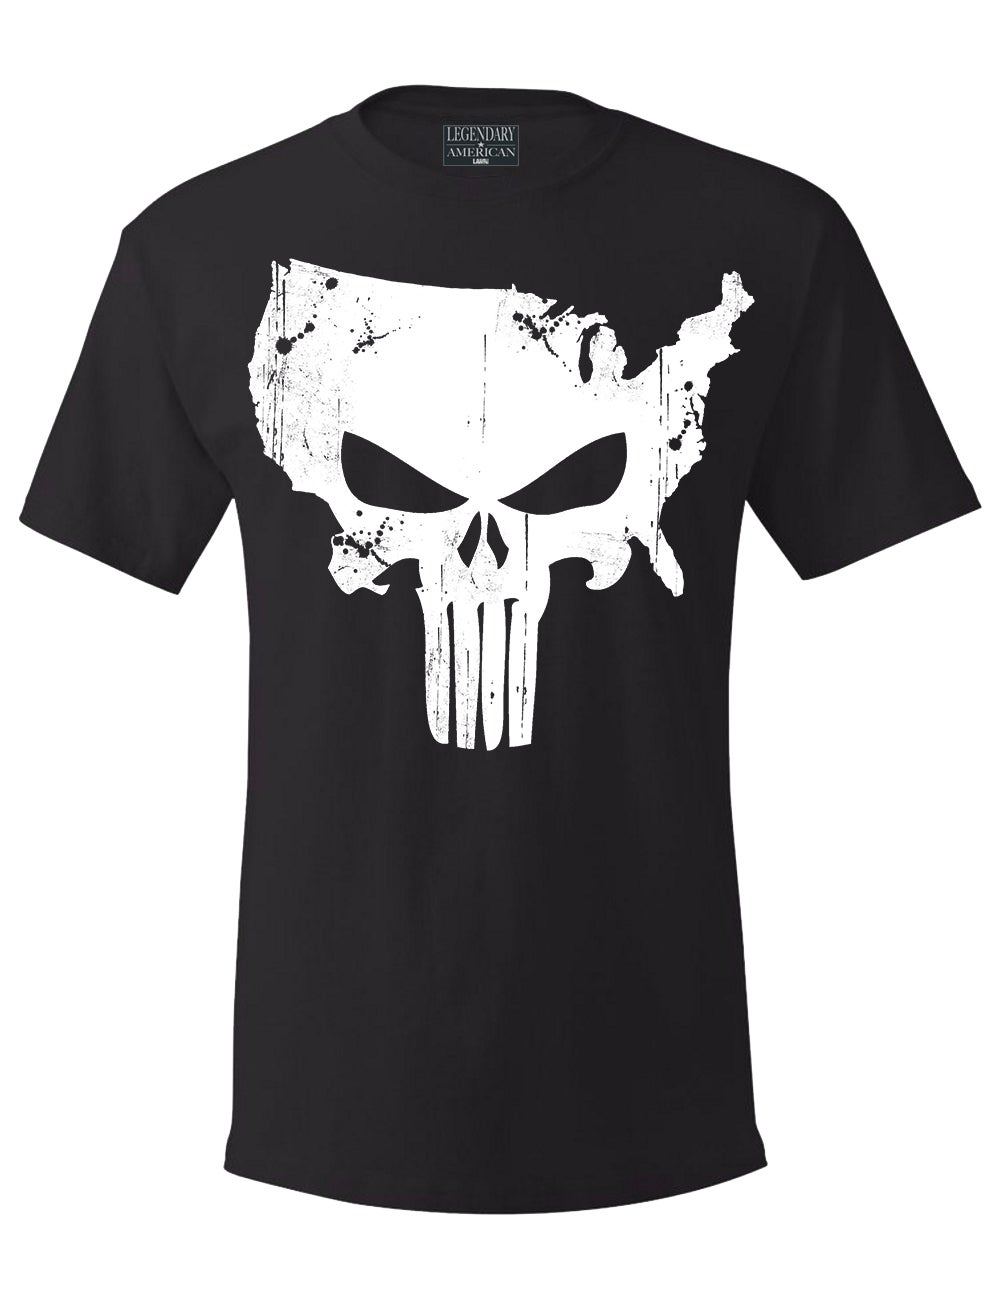 Image of Legendary American American Punisher tee -black